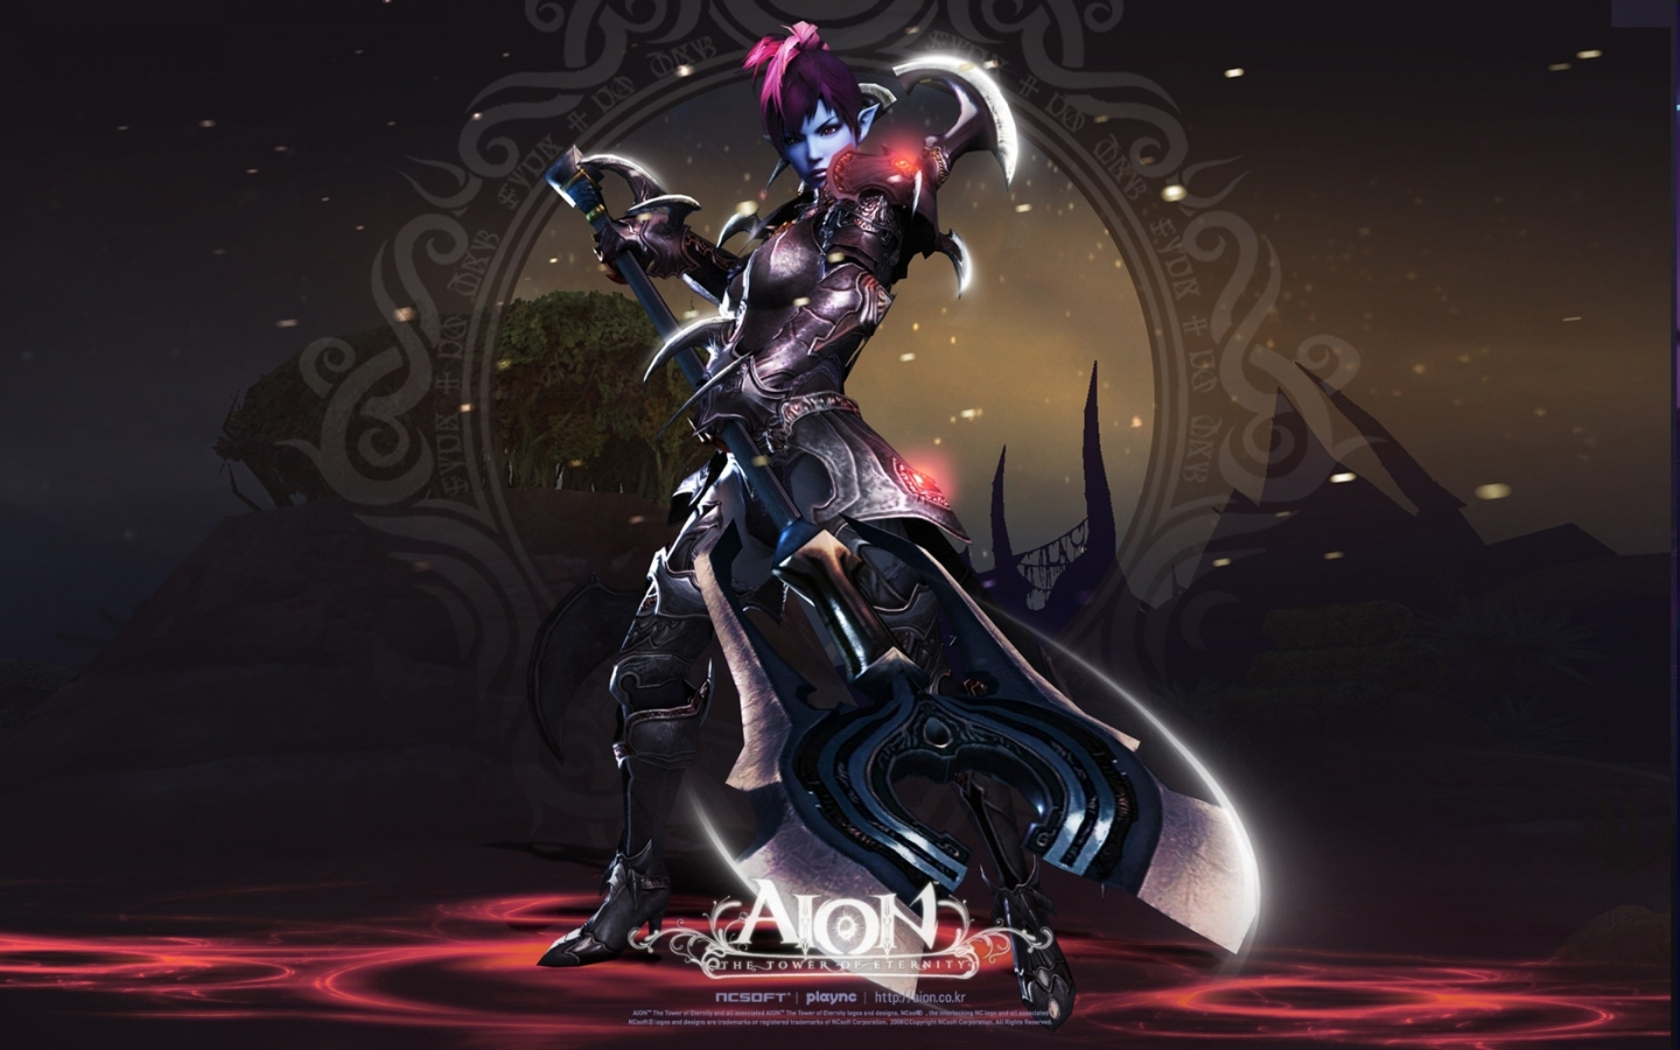 Aion The Tower of Eternity for 1680 x 1050 widescreen resolution